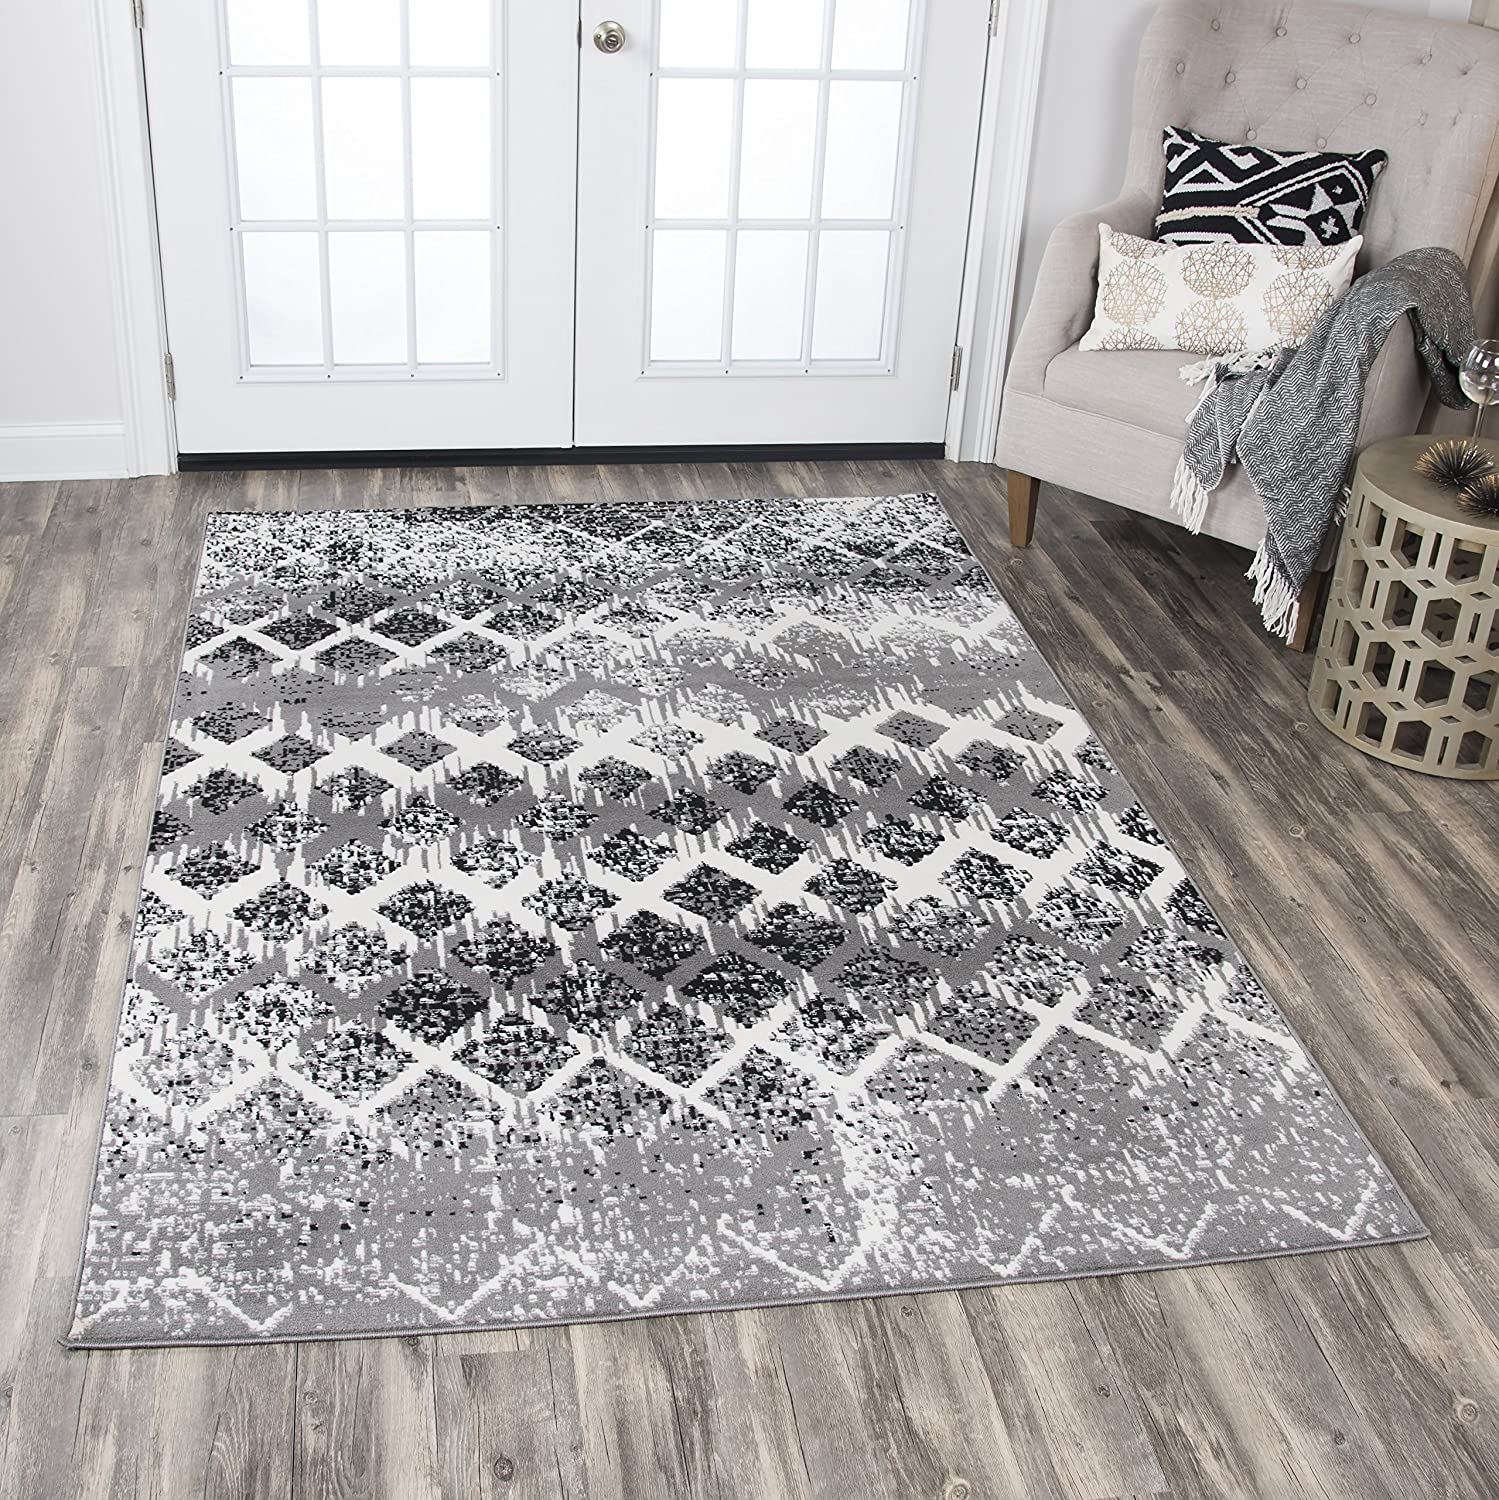 Rizzy Home Xcite Collection Polypropylene Area Rug, 8' x 10', Gray/Ivory/Black Geometric